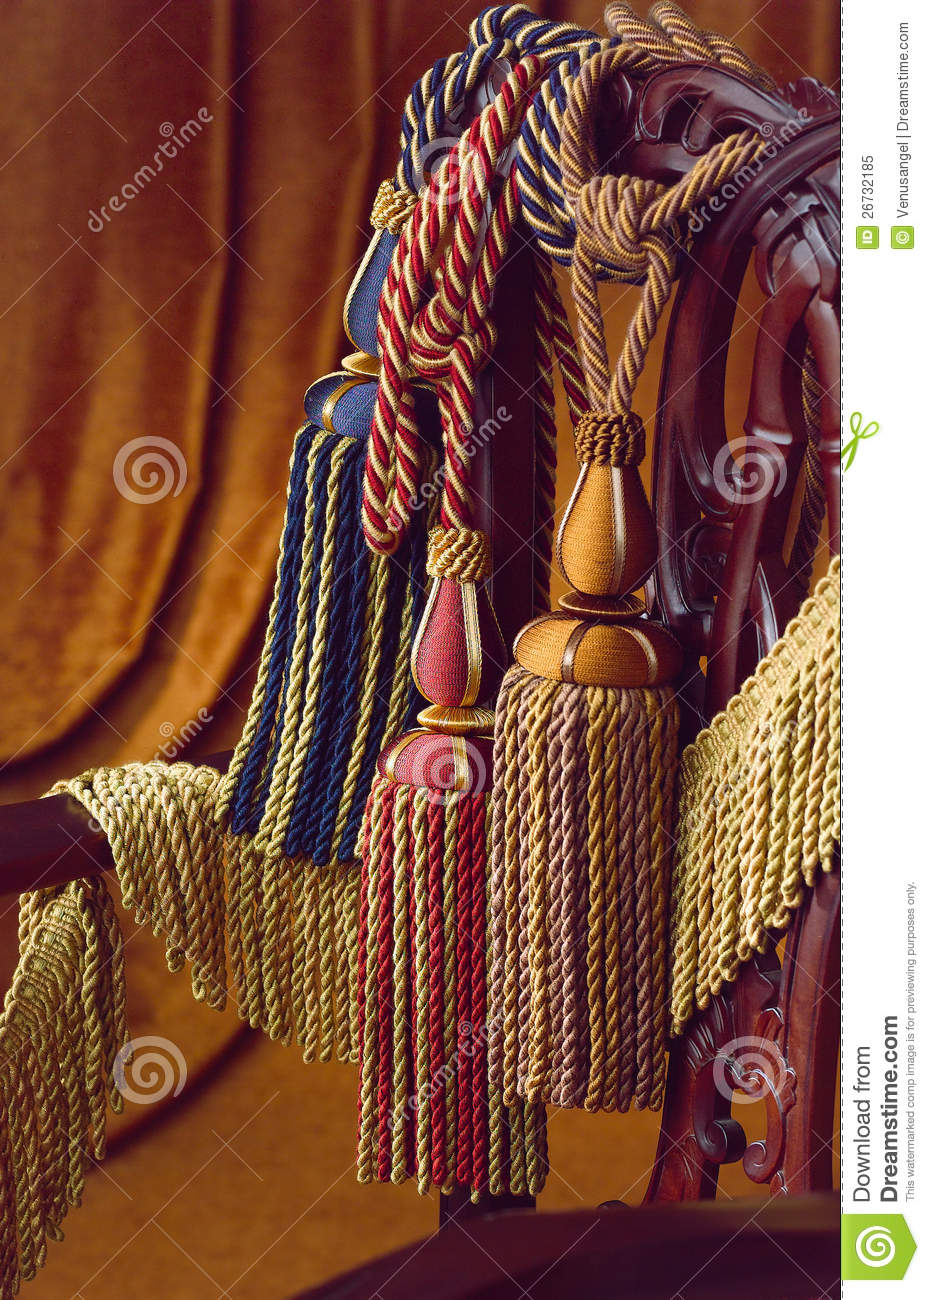 Curtain Tassels Stock Image Image Of Curtain Colorful